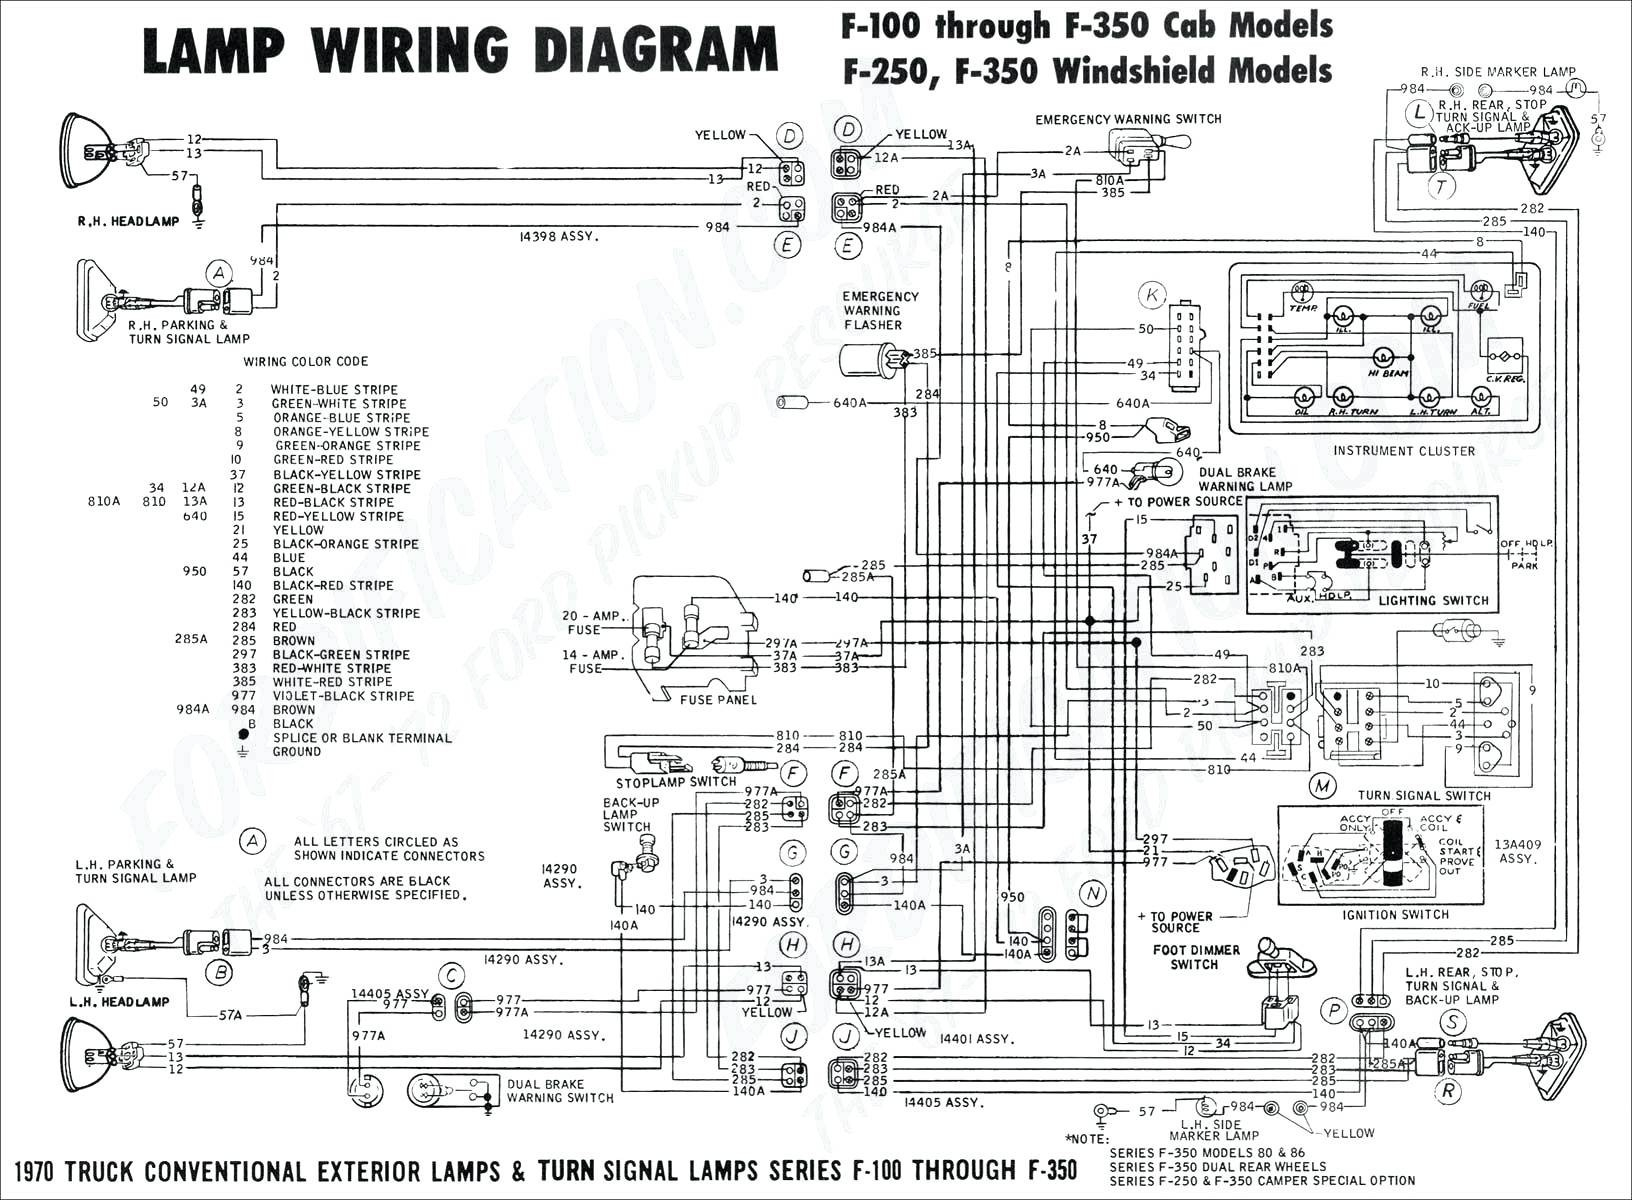 1984 Ford F 150 Solenoid Wiring Diagram - Diagrams Catalogue F Ke Wiring Diagram on